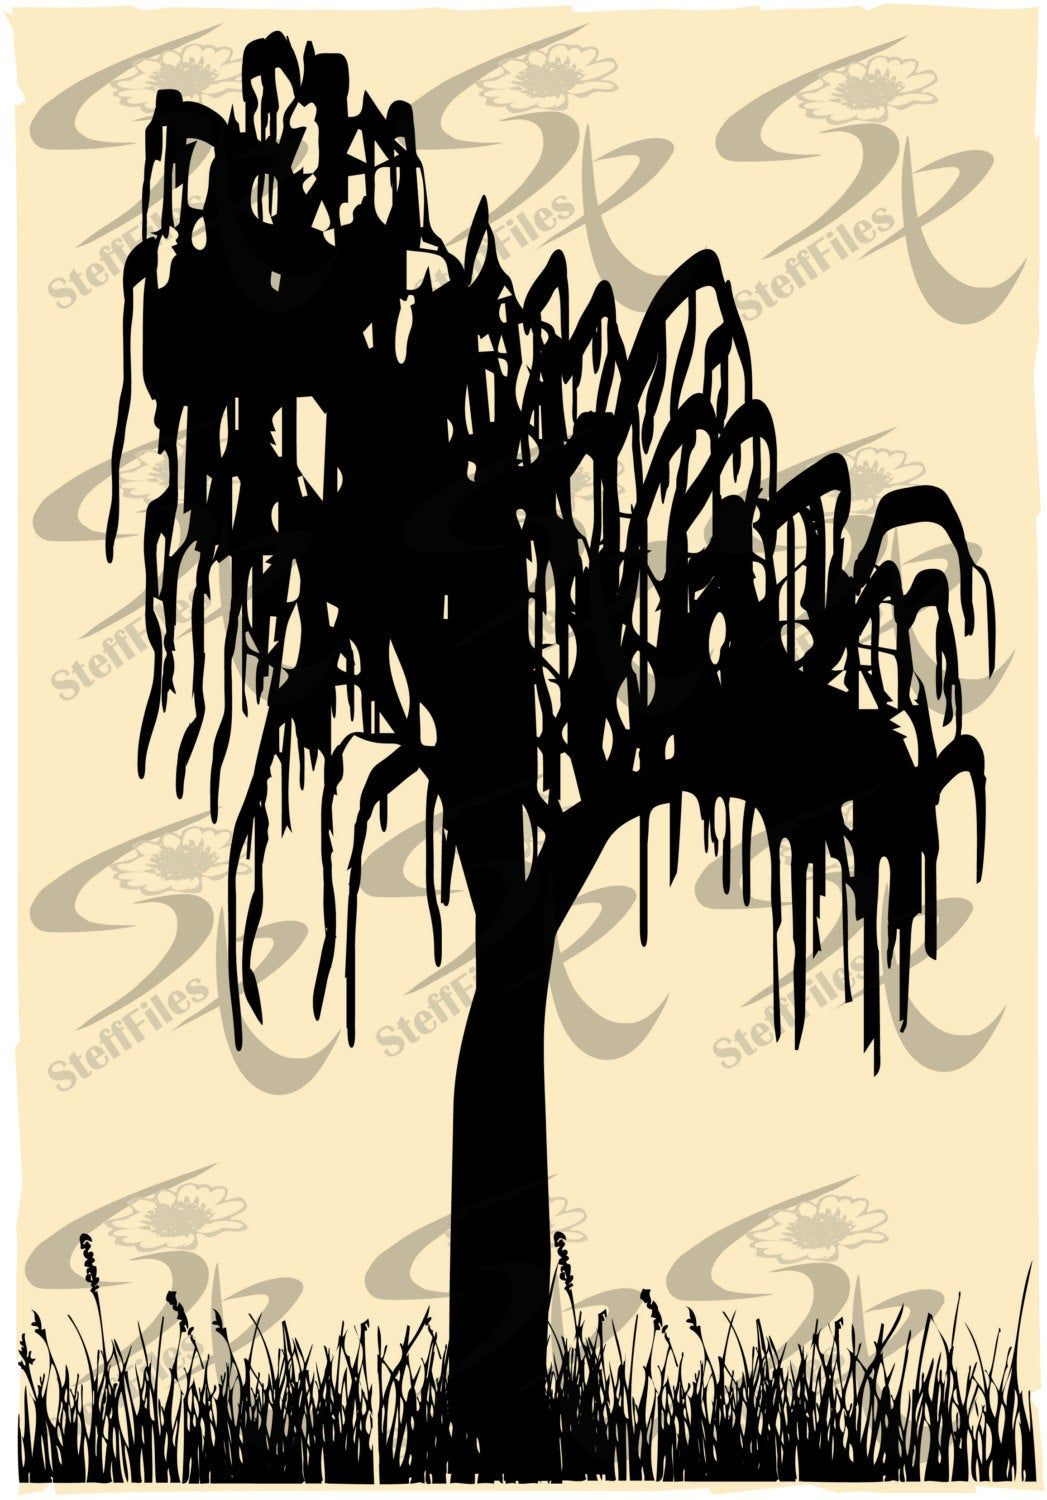 Vector Weeping Willow Treeart Printsvgdxfai Png Eps Etsy In 2021 Tree Illustration Tree Silhouette Weeping Willow